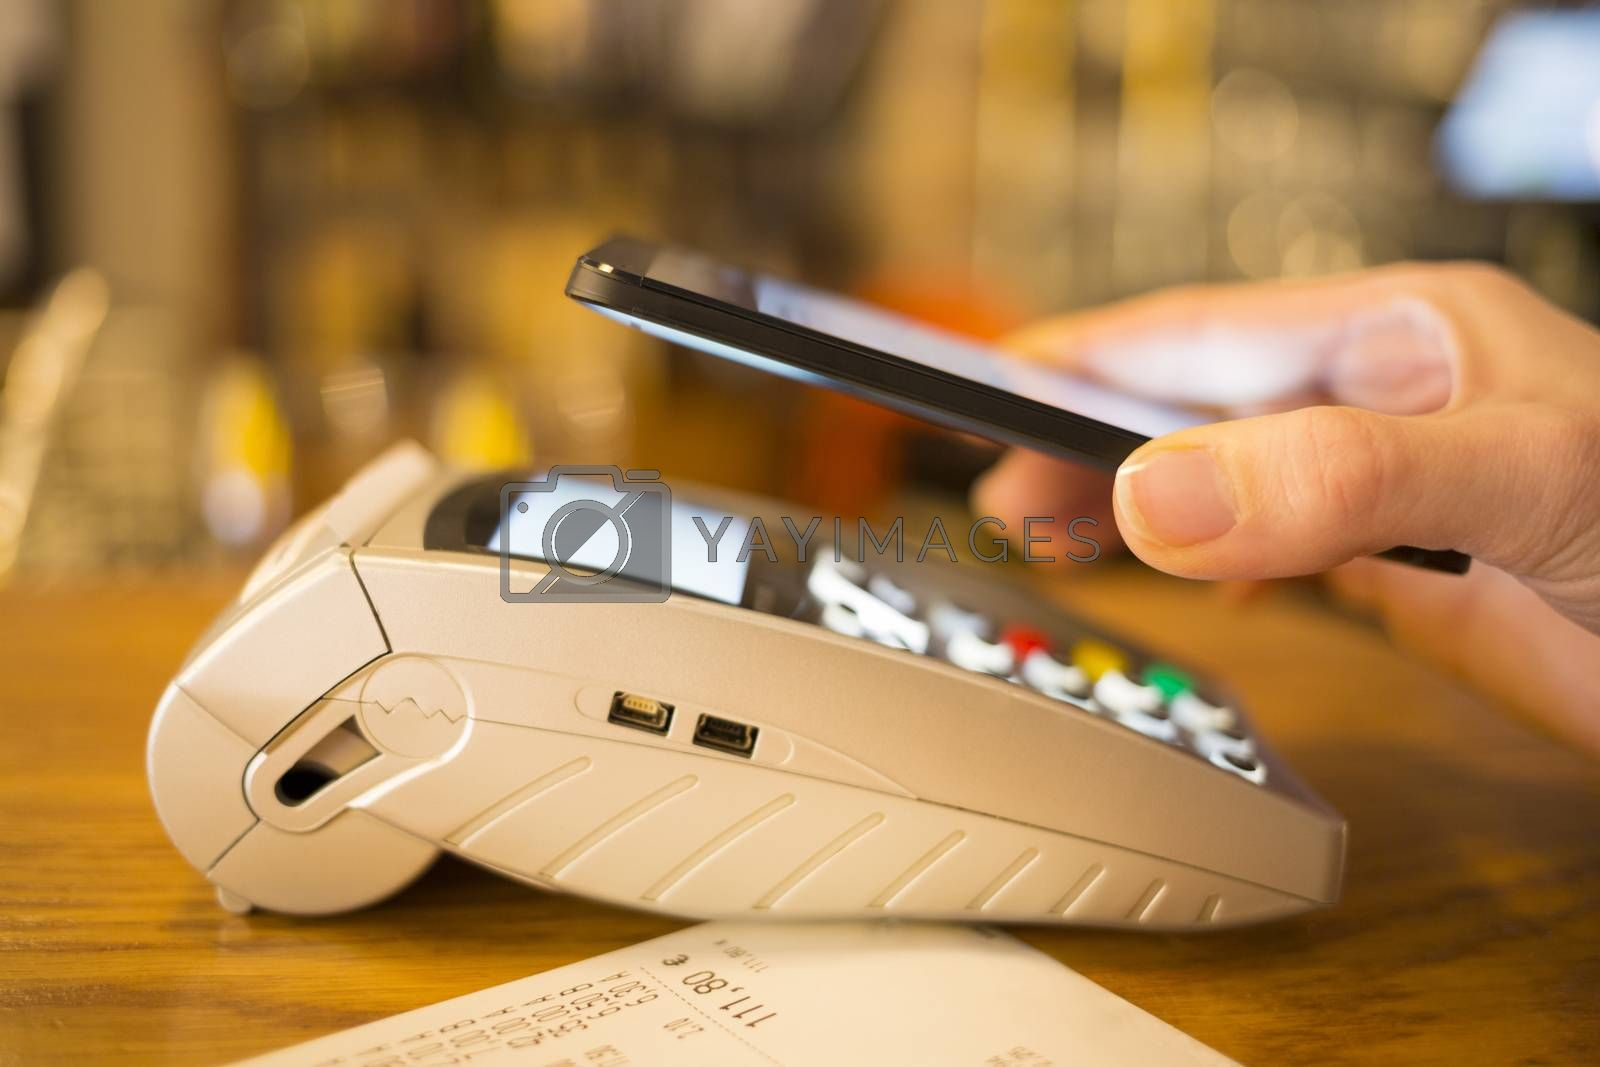 Woman paying with NFC technology on mobile phone, restaurant, sh by LDProd